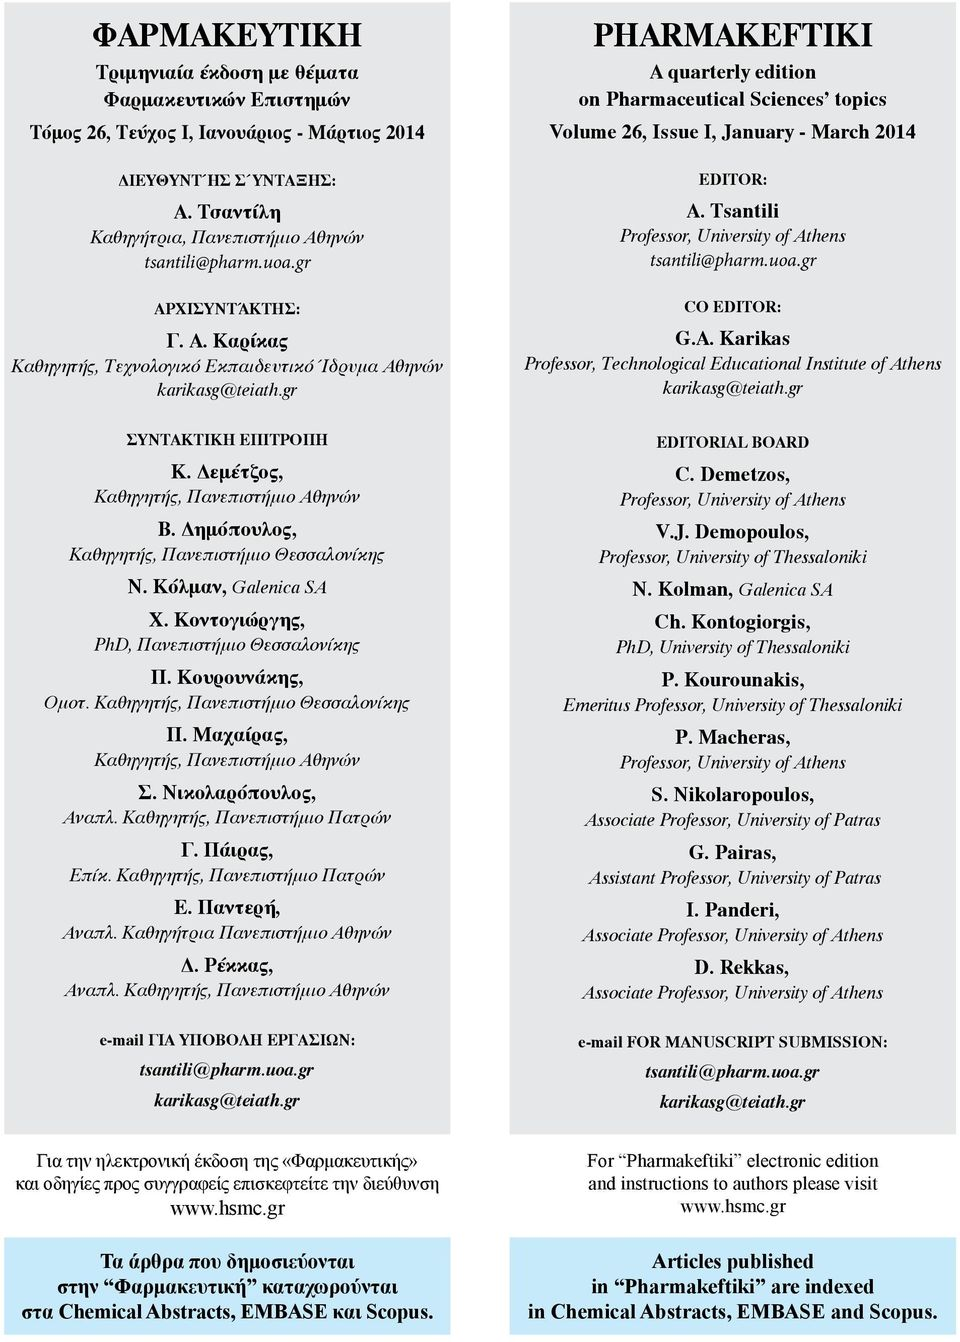 gr Pharmakeftiki A quarterly edition on Pharmaceutical Sciences topics Volume 26, Issue I, January - March 2014 Editor: A. Tsantili Professor, University of Athens tsantili@pharm.uoa.gr Co Editor: G.